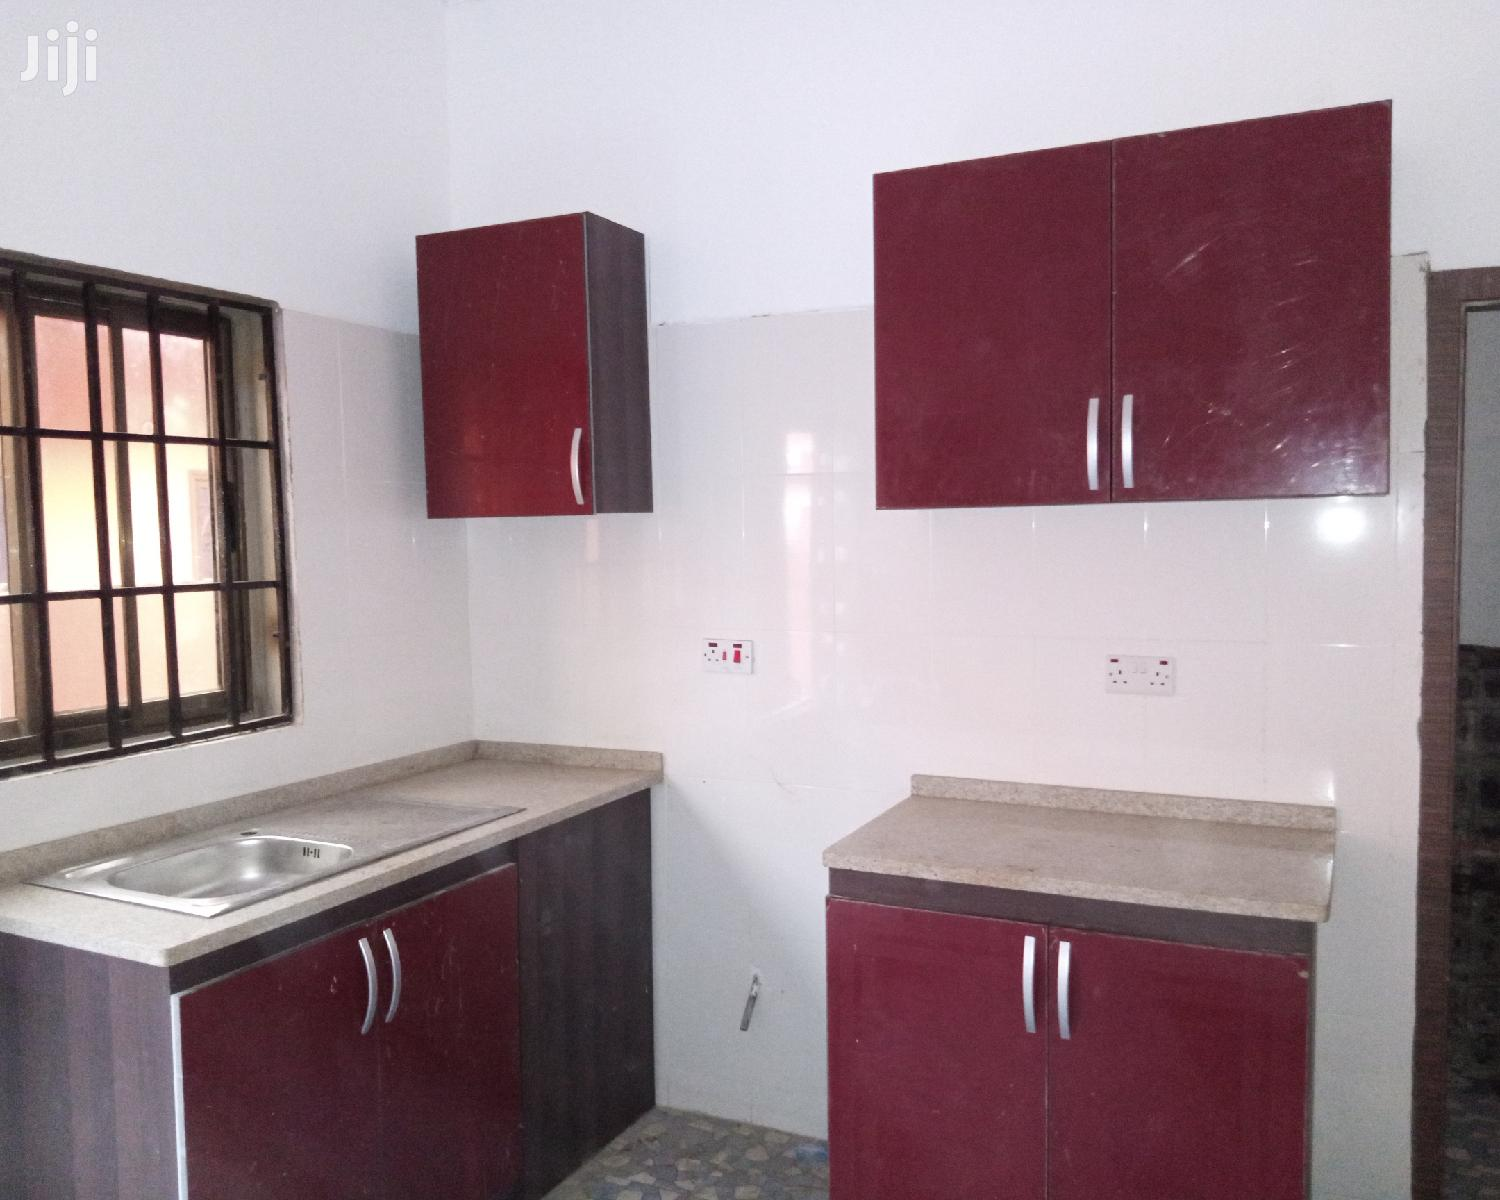 3 Bedroom New House at Community 18 Block Factory for Sale | Houses & Apartments For Sale for sale in Teshie-Nungua Estates, Greater Accra, Ghana